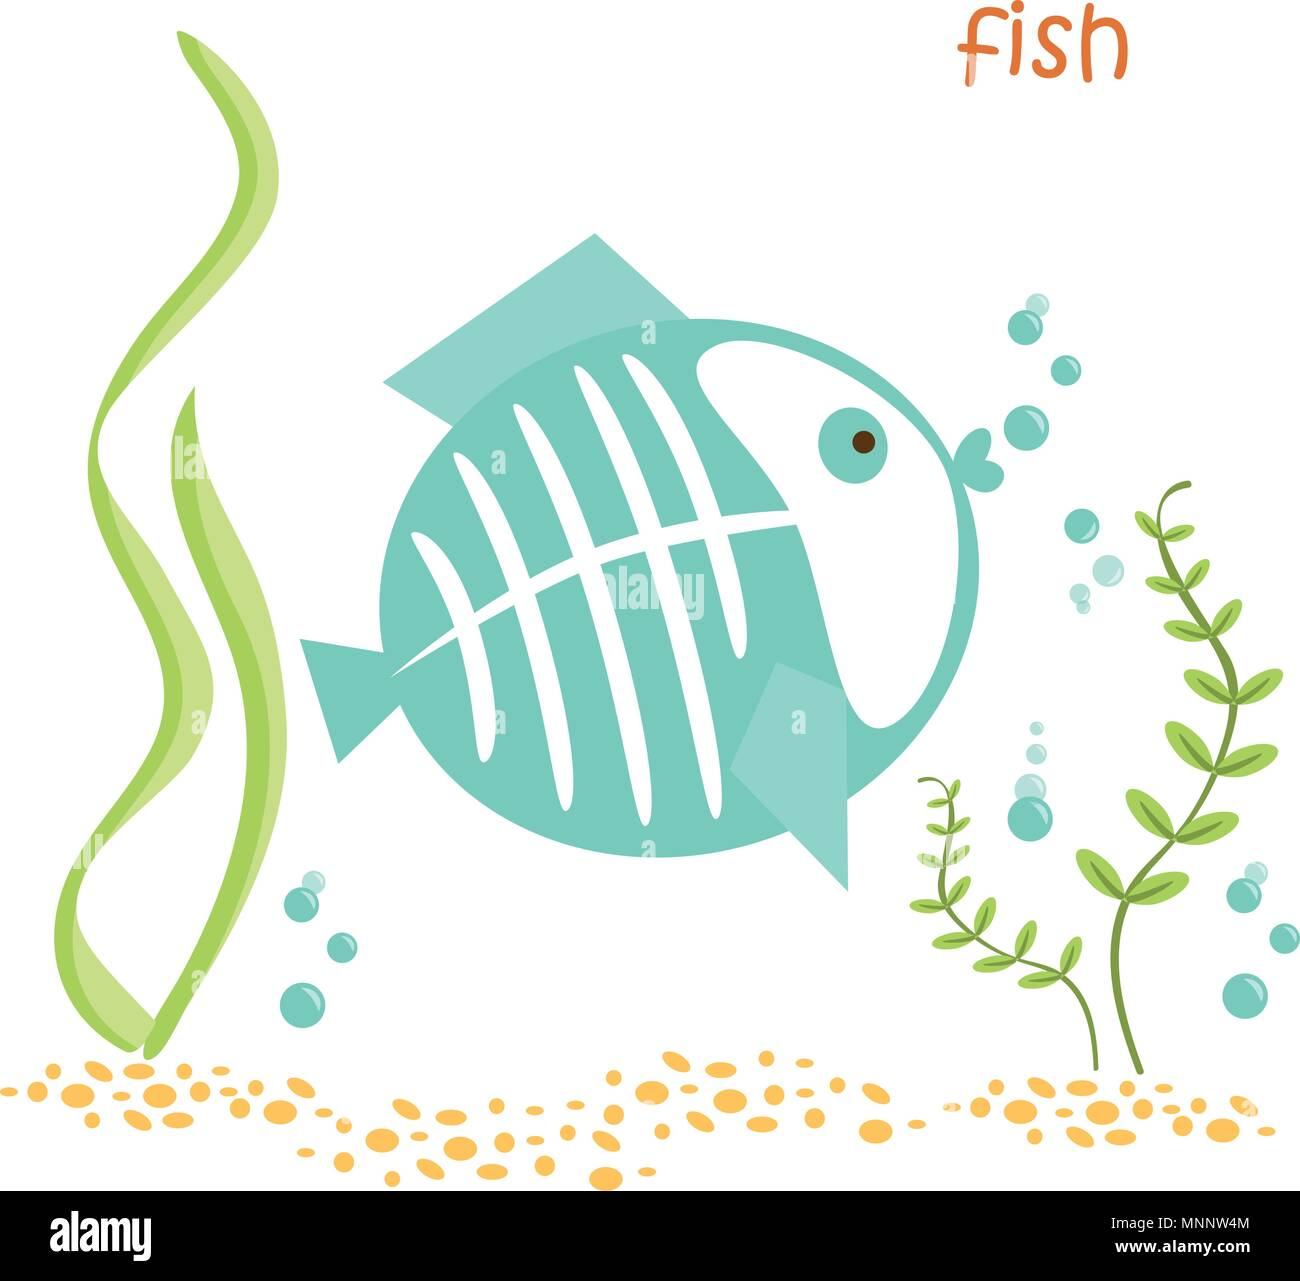 Fish isolated. Drawing fish for a child - Stock Image